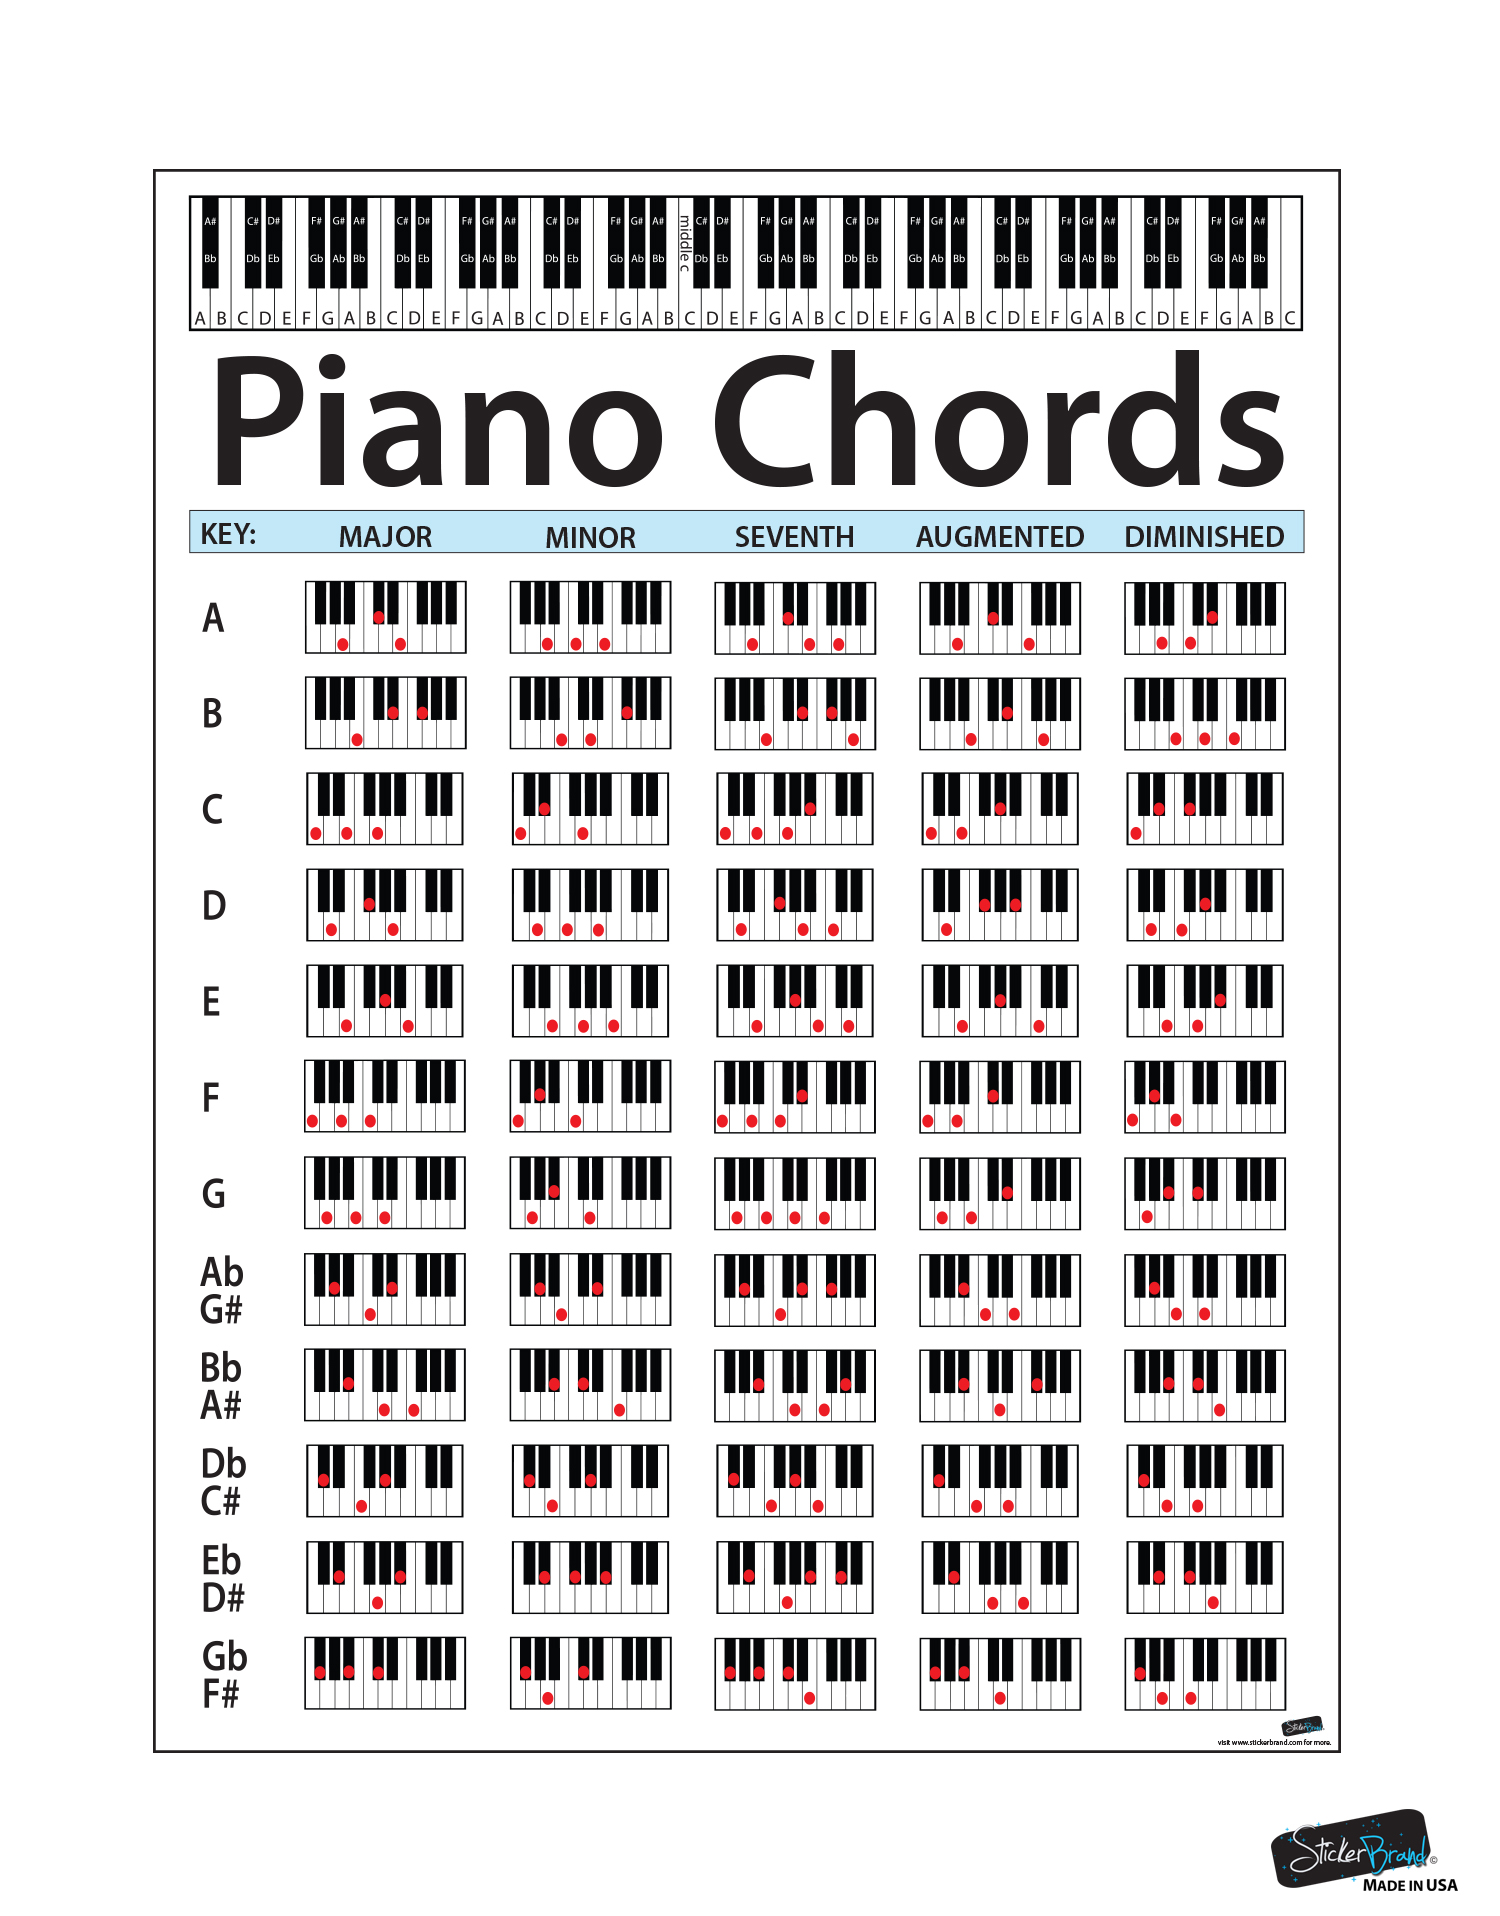 Piano Chord Chart Poster  Educational Guide For Keyboard Music Lessons  P1001